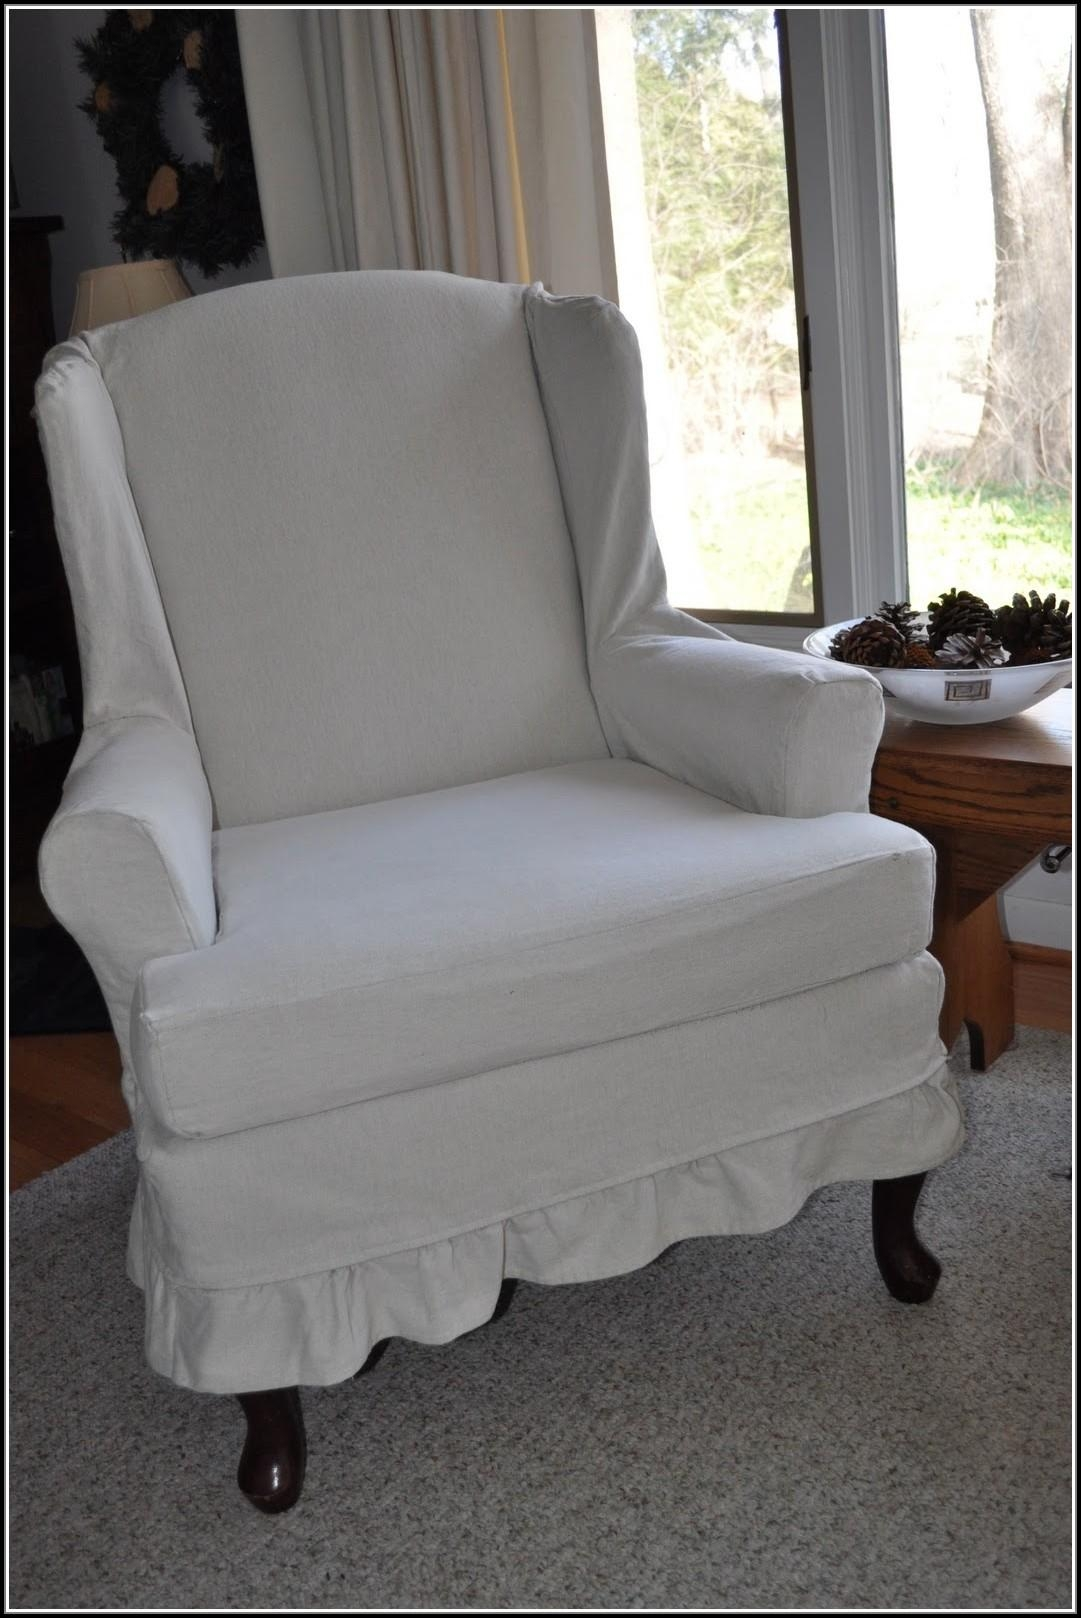 Wingback Chair Slipcovers Pottery Barn – Chair : Home Furniture With Pottery Barn Chair Slipcovers (View 9 of 20)